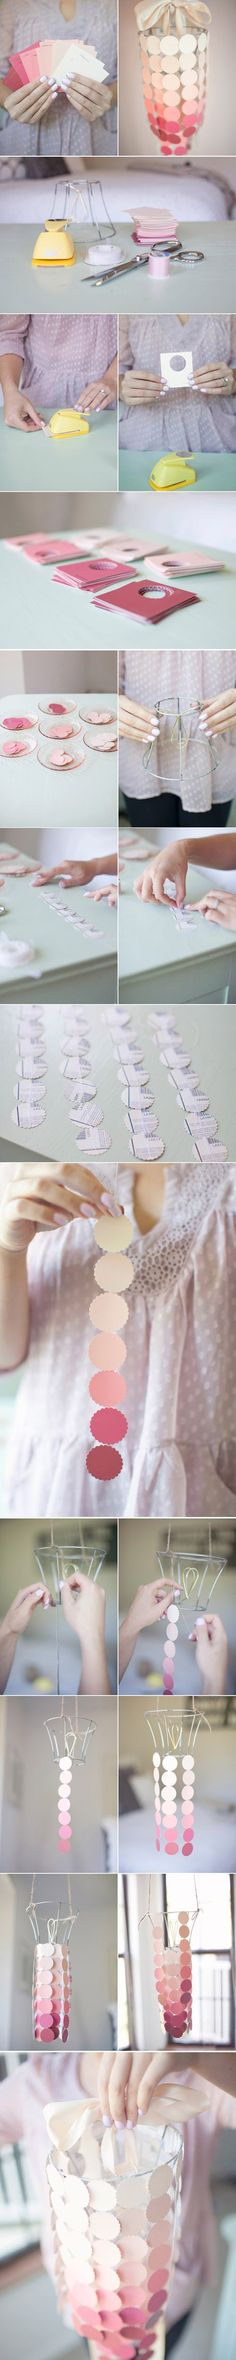 Growing flowers - DIY handmade ornaments http://www.52souluo.com/57957.html gradient